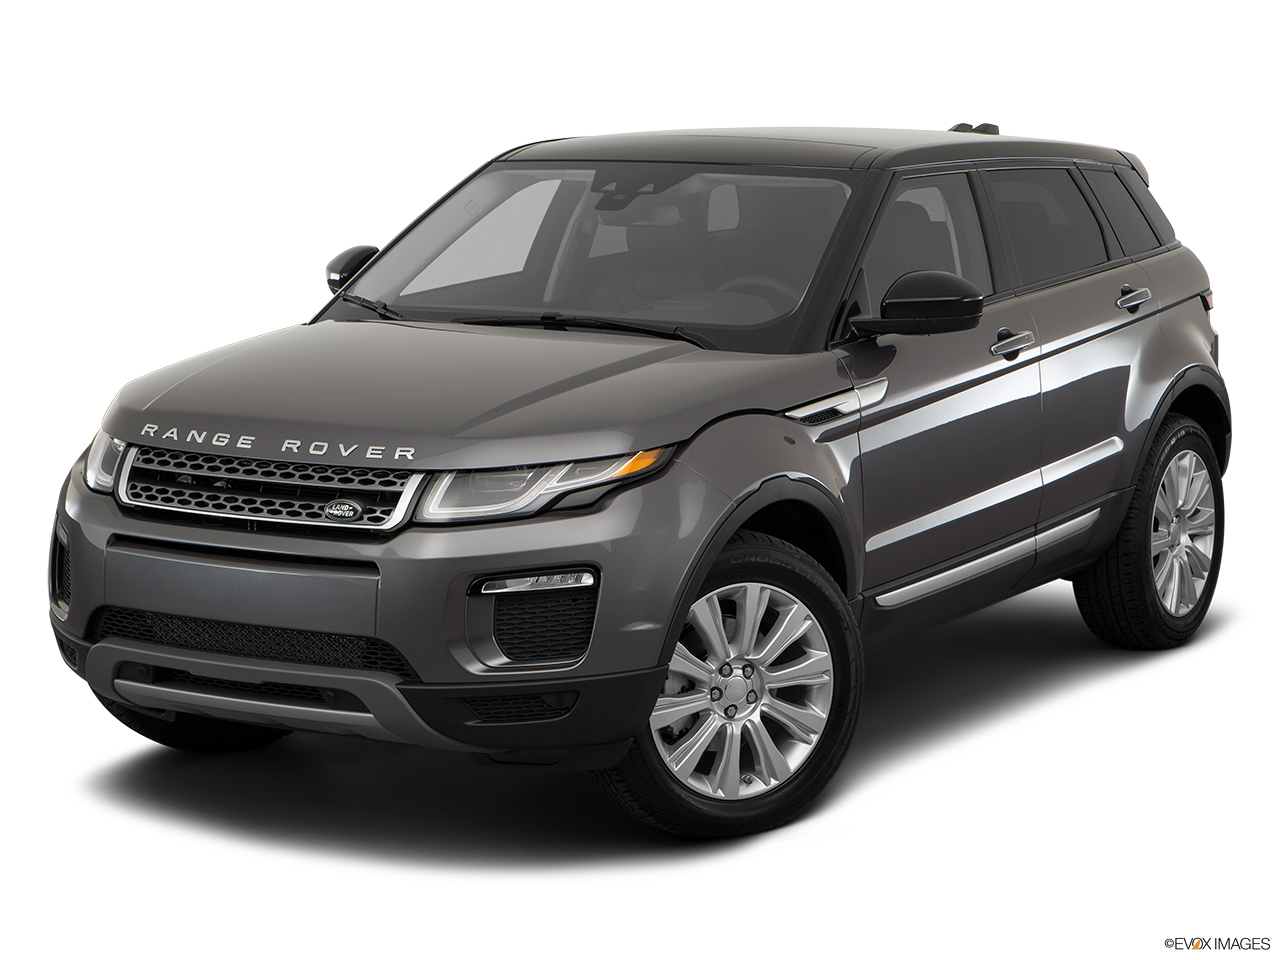 2018 land rover evoque specs 2018 cars models. Black Bedroom Furniture Sets. Home Design Ideas